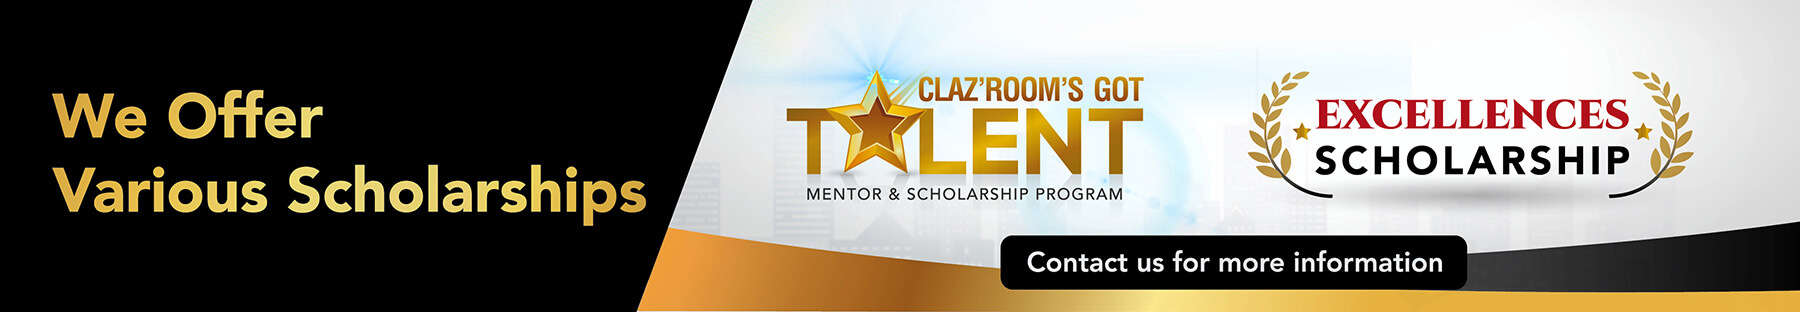 clazroom scholarship